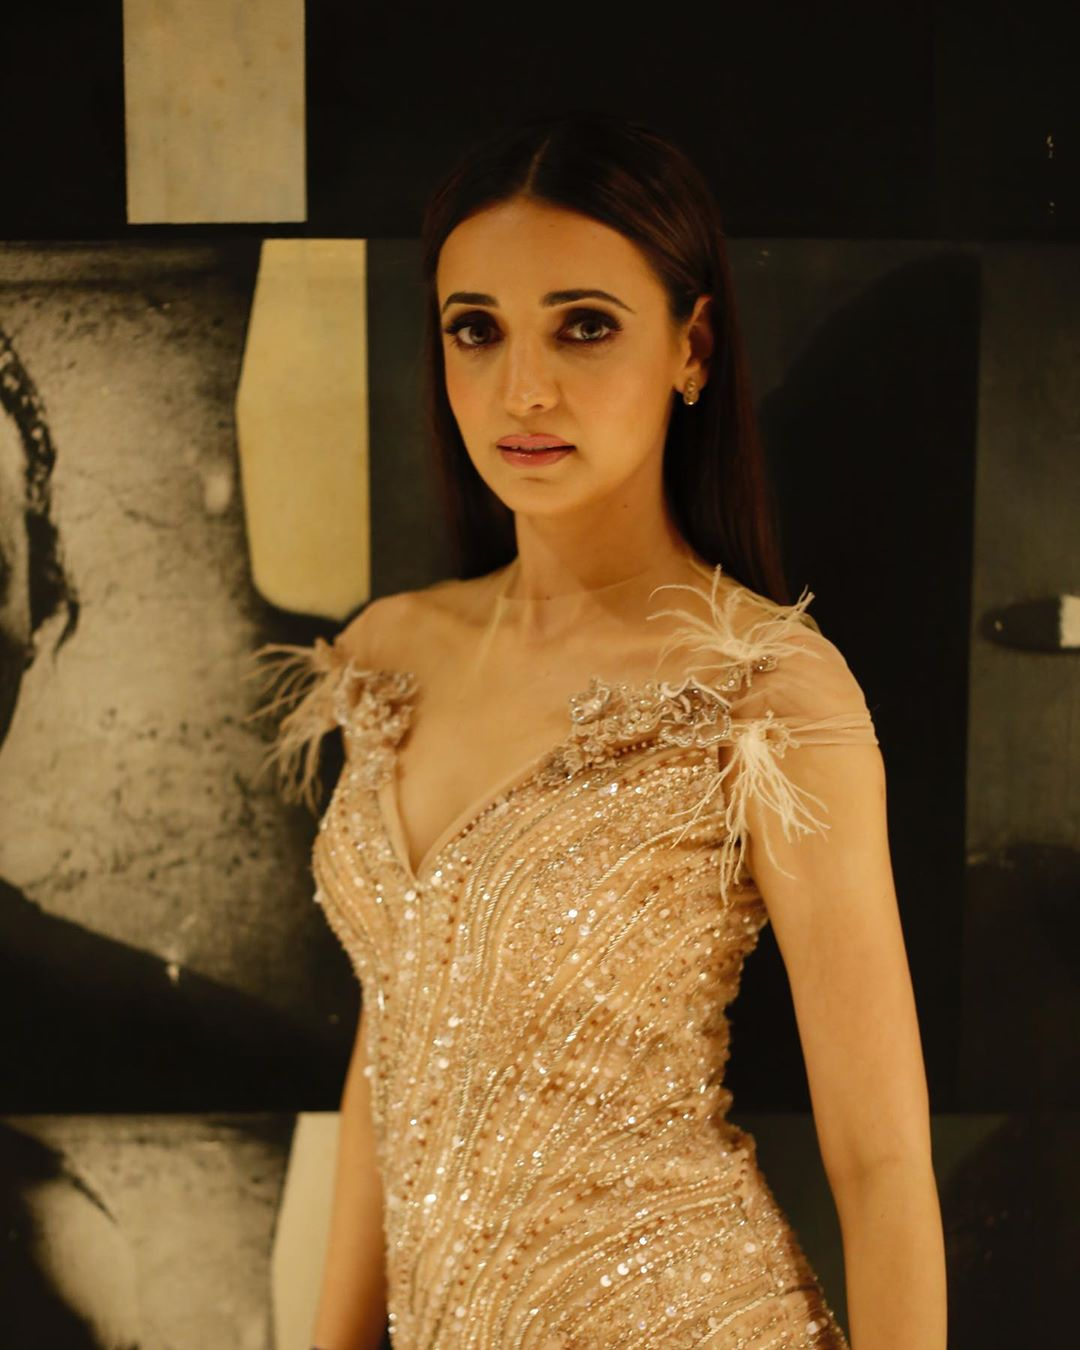 Pictures of Sanaya Irani that prove she is the ultimate girl next door of telly town 3